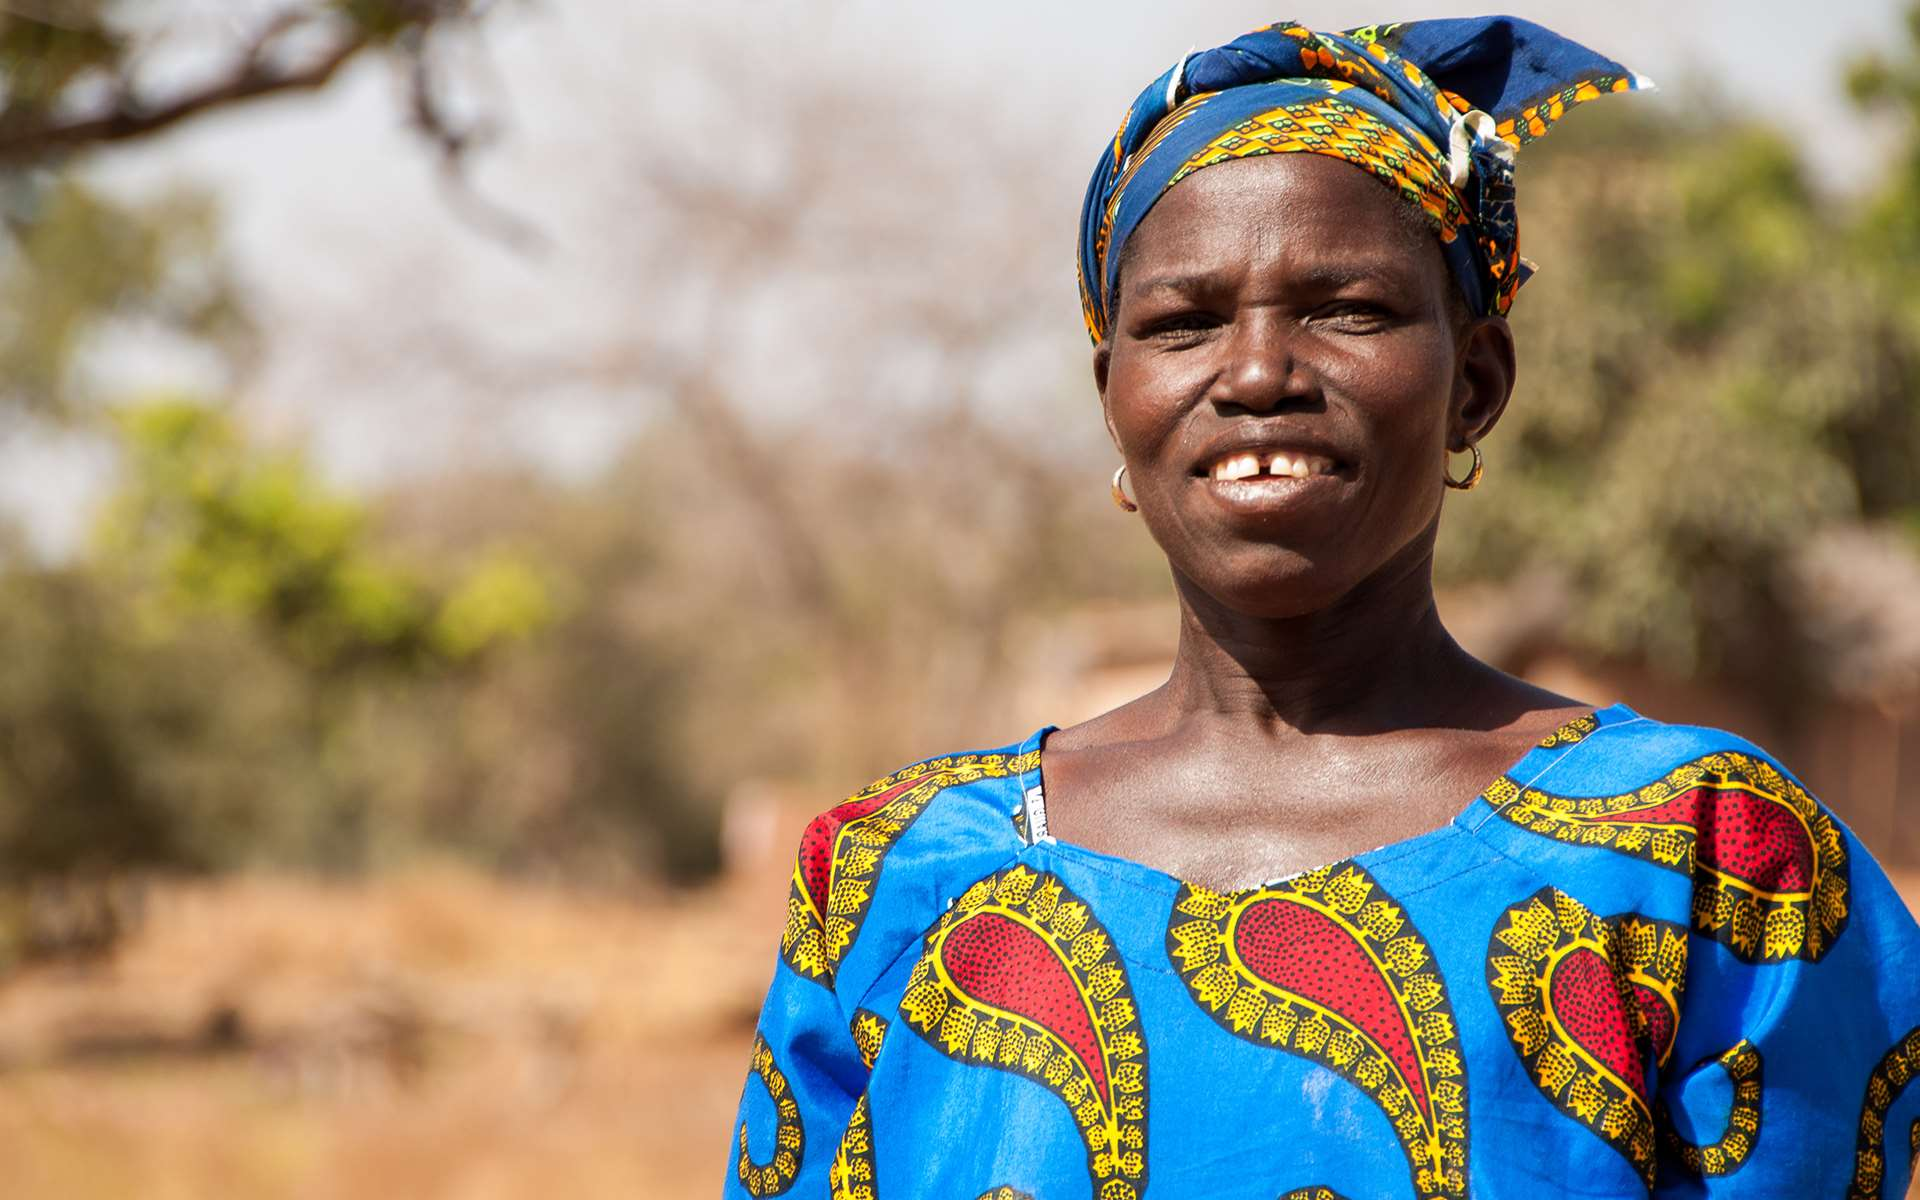 Close up of Naomie, a woman in Mali that is participating in a Tree Aid project.